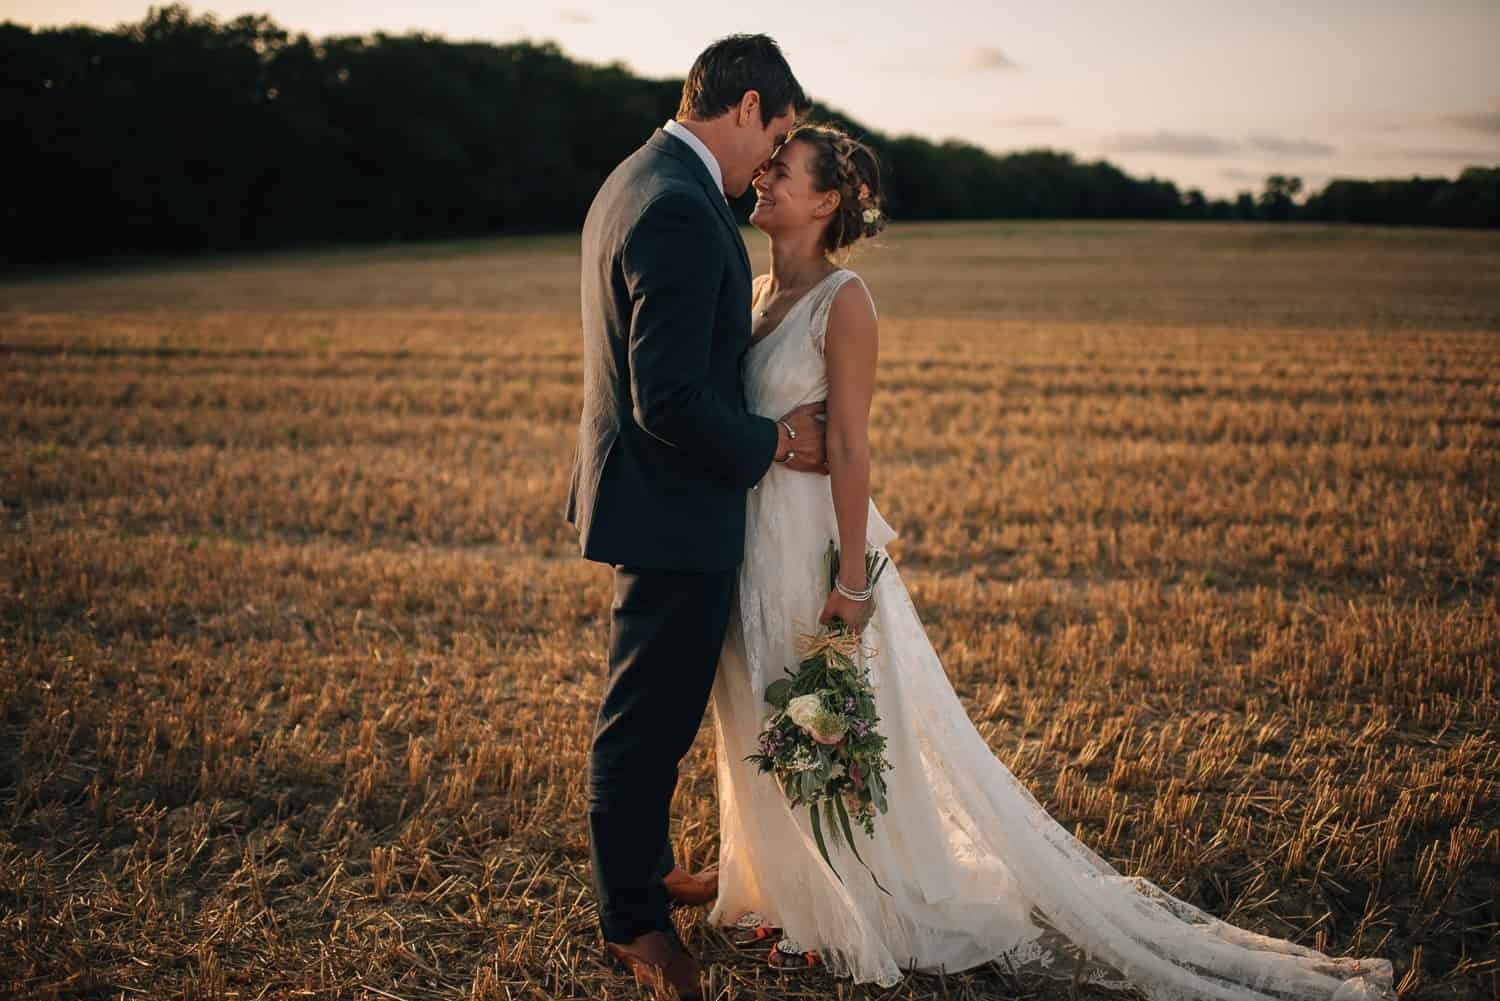 boho bride and groom photographed in field at sunset